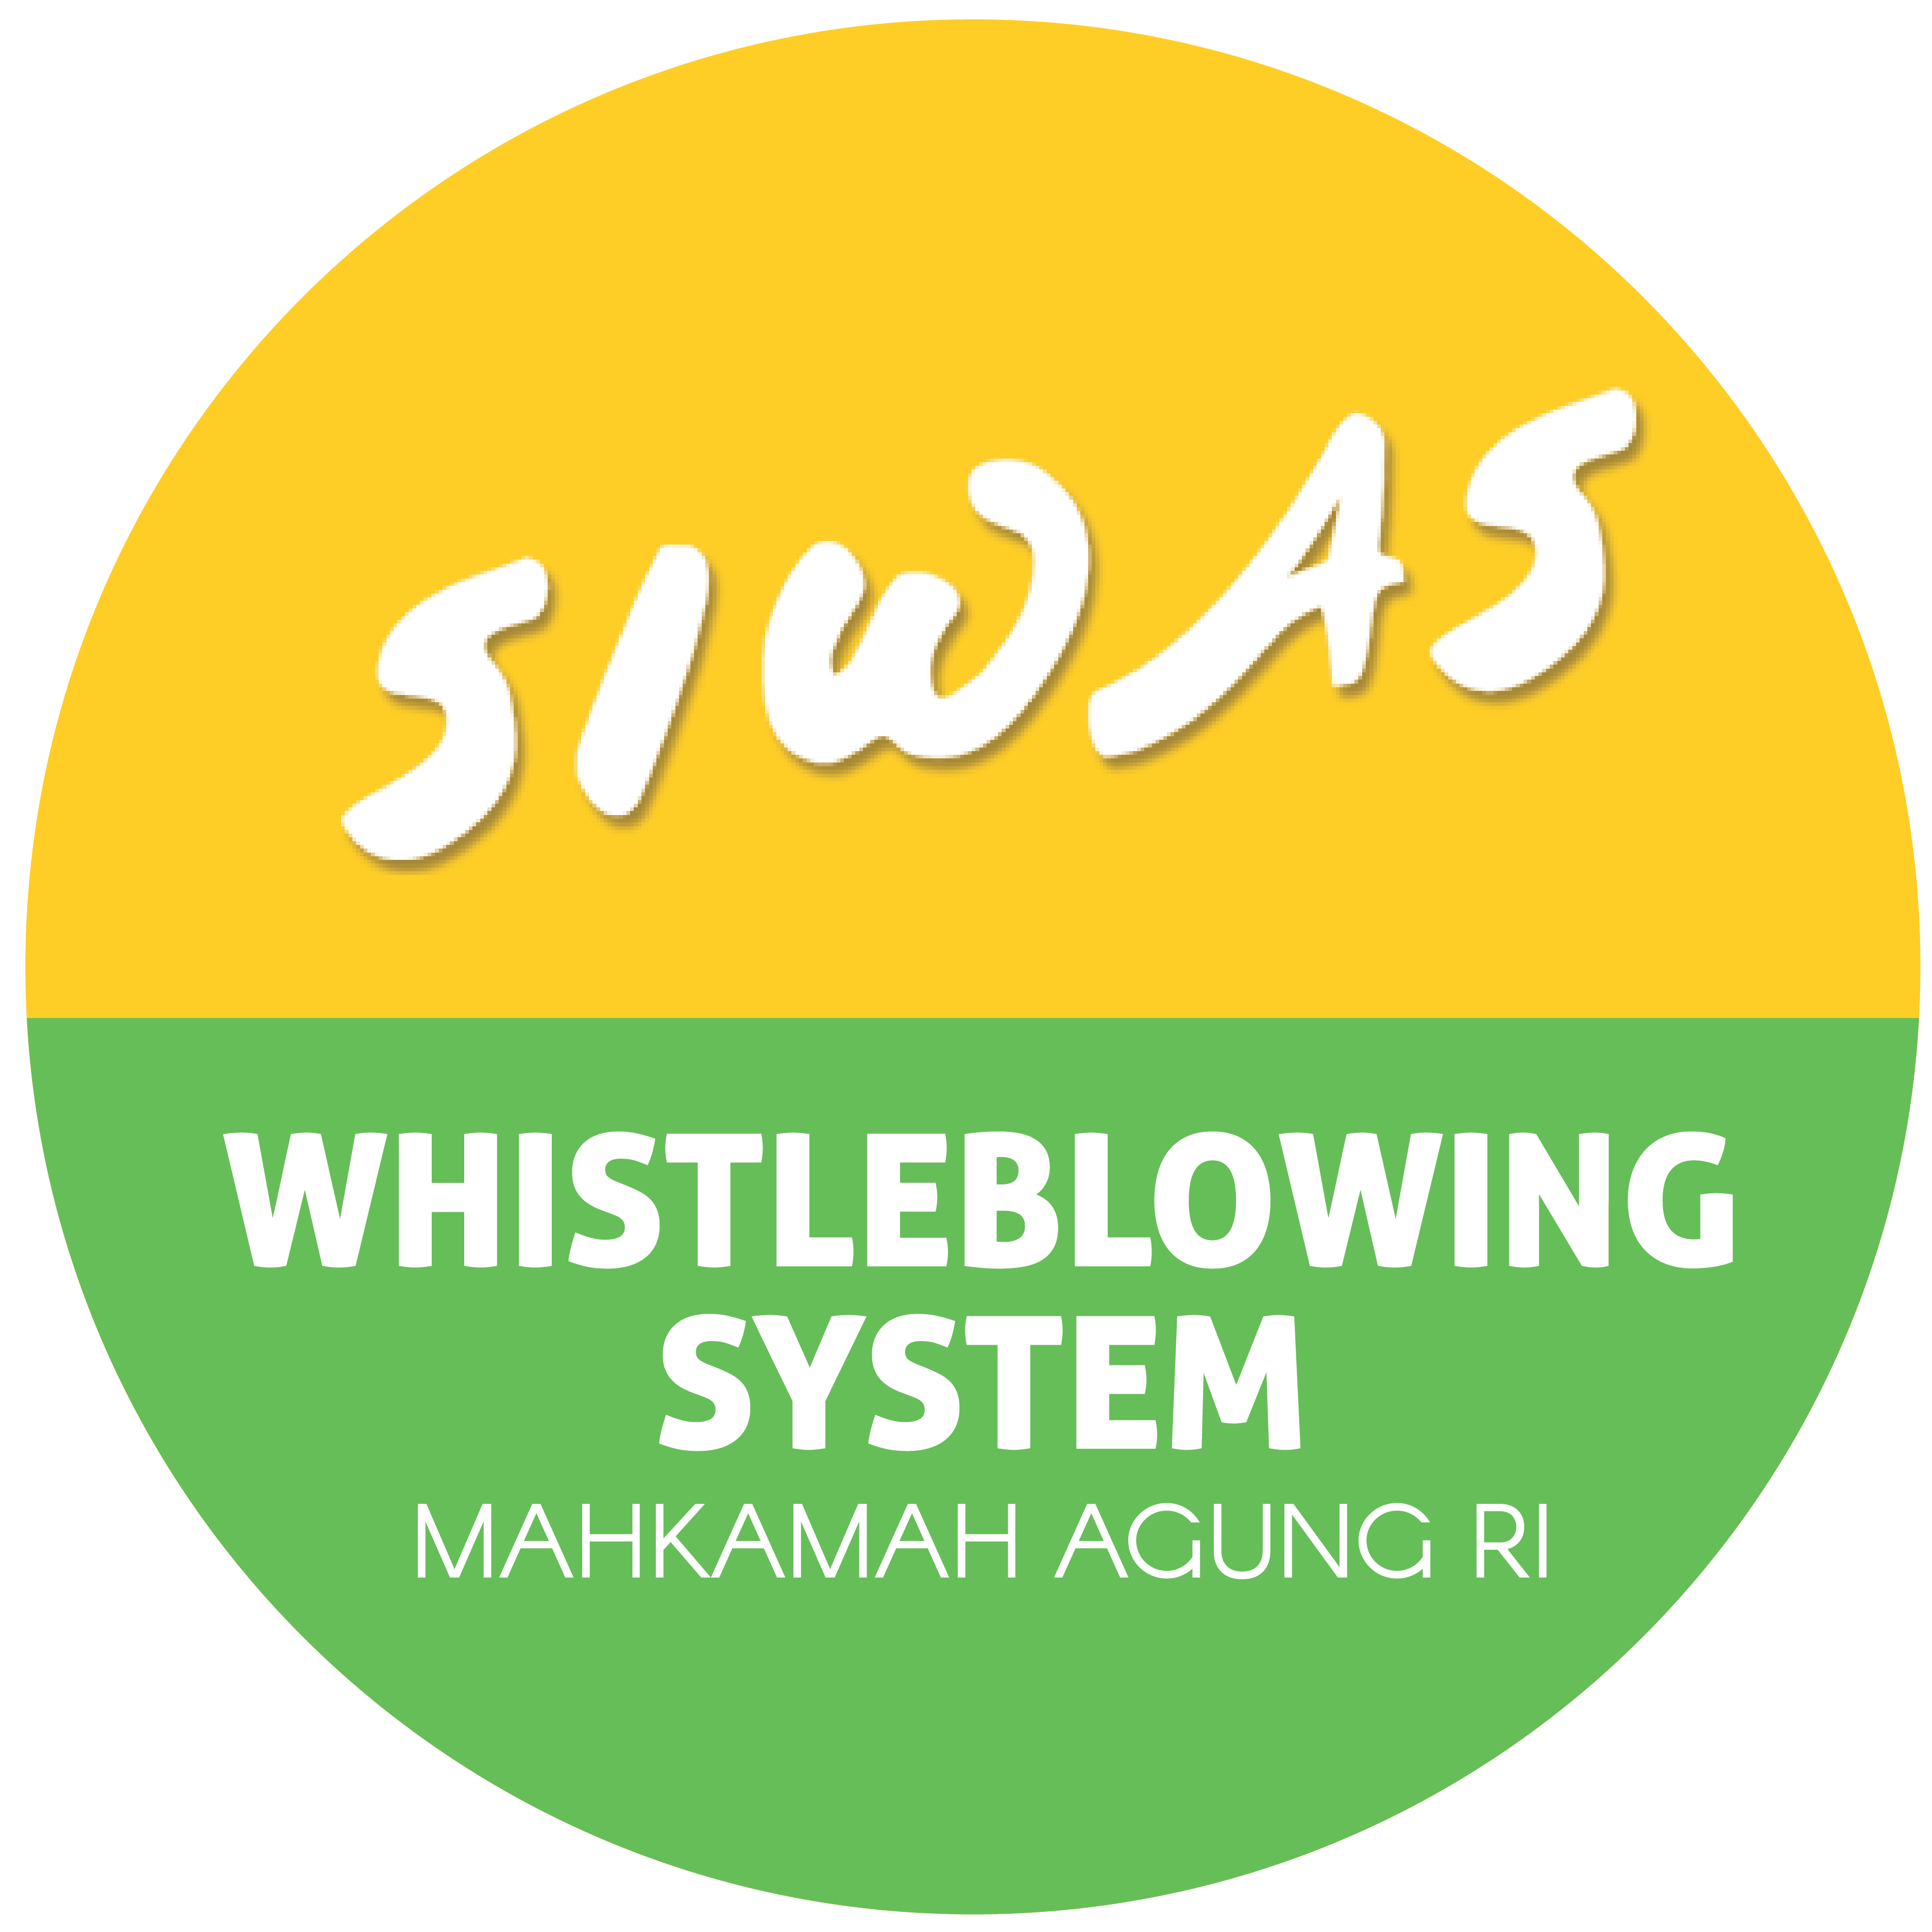 button-siwas-01.png